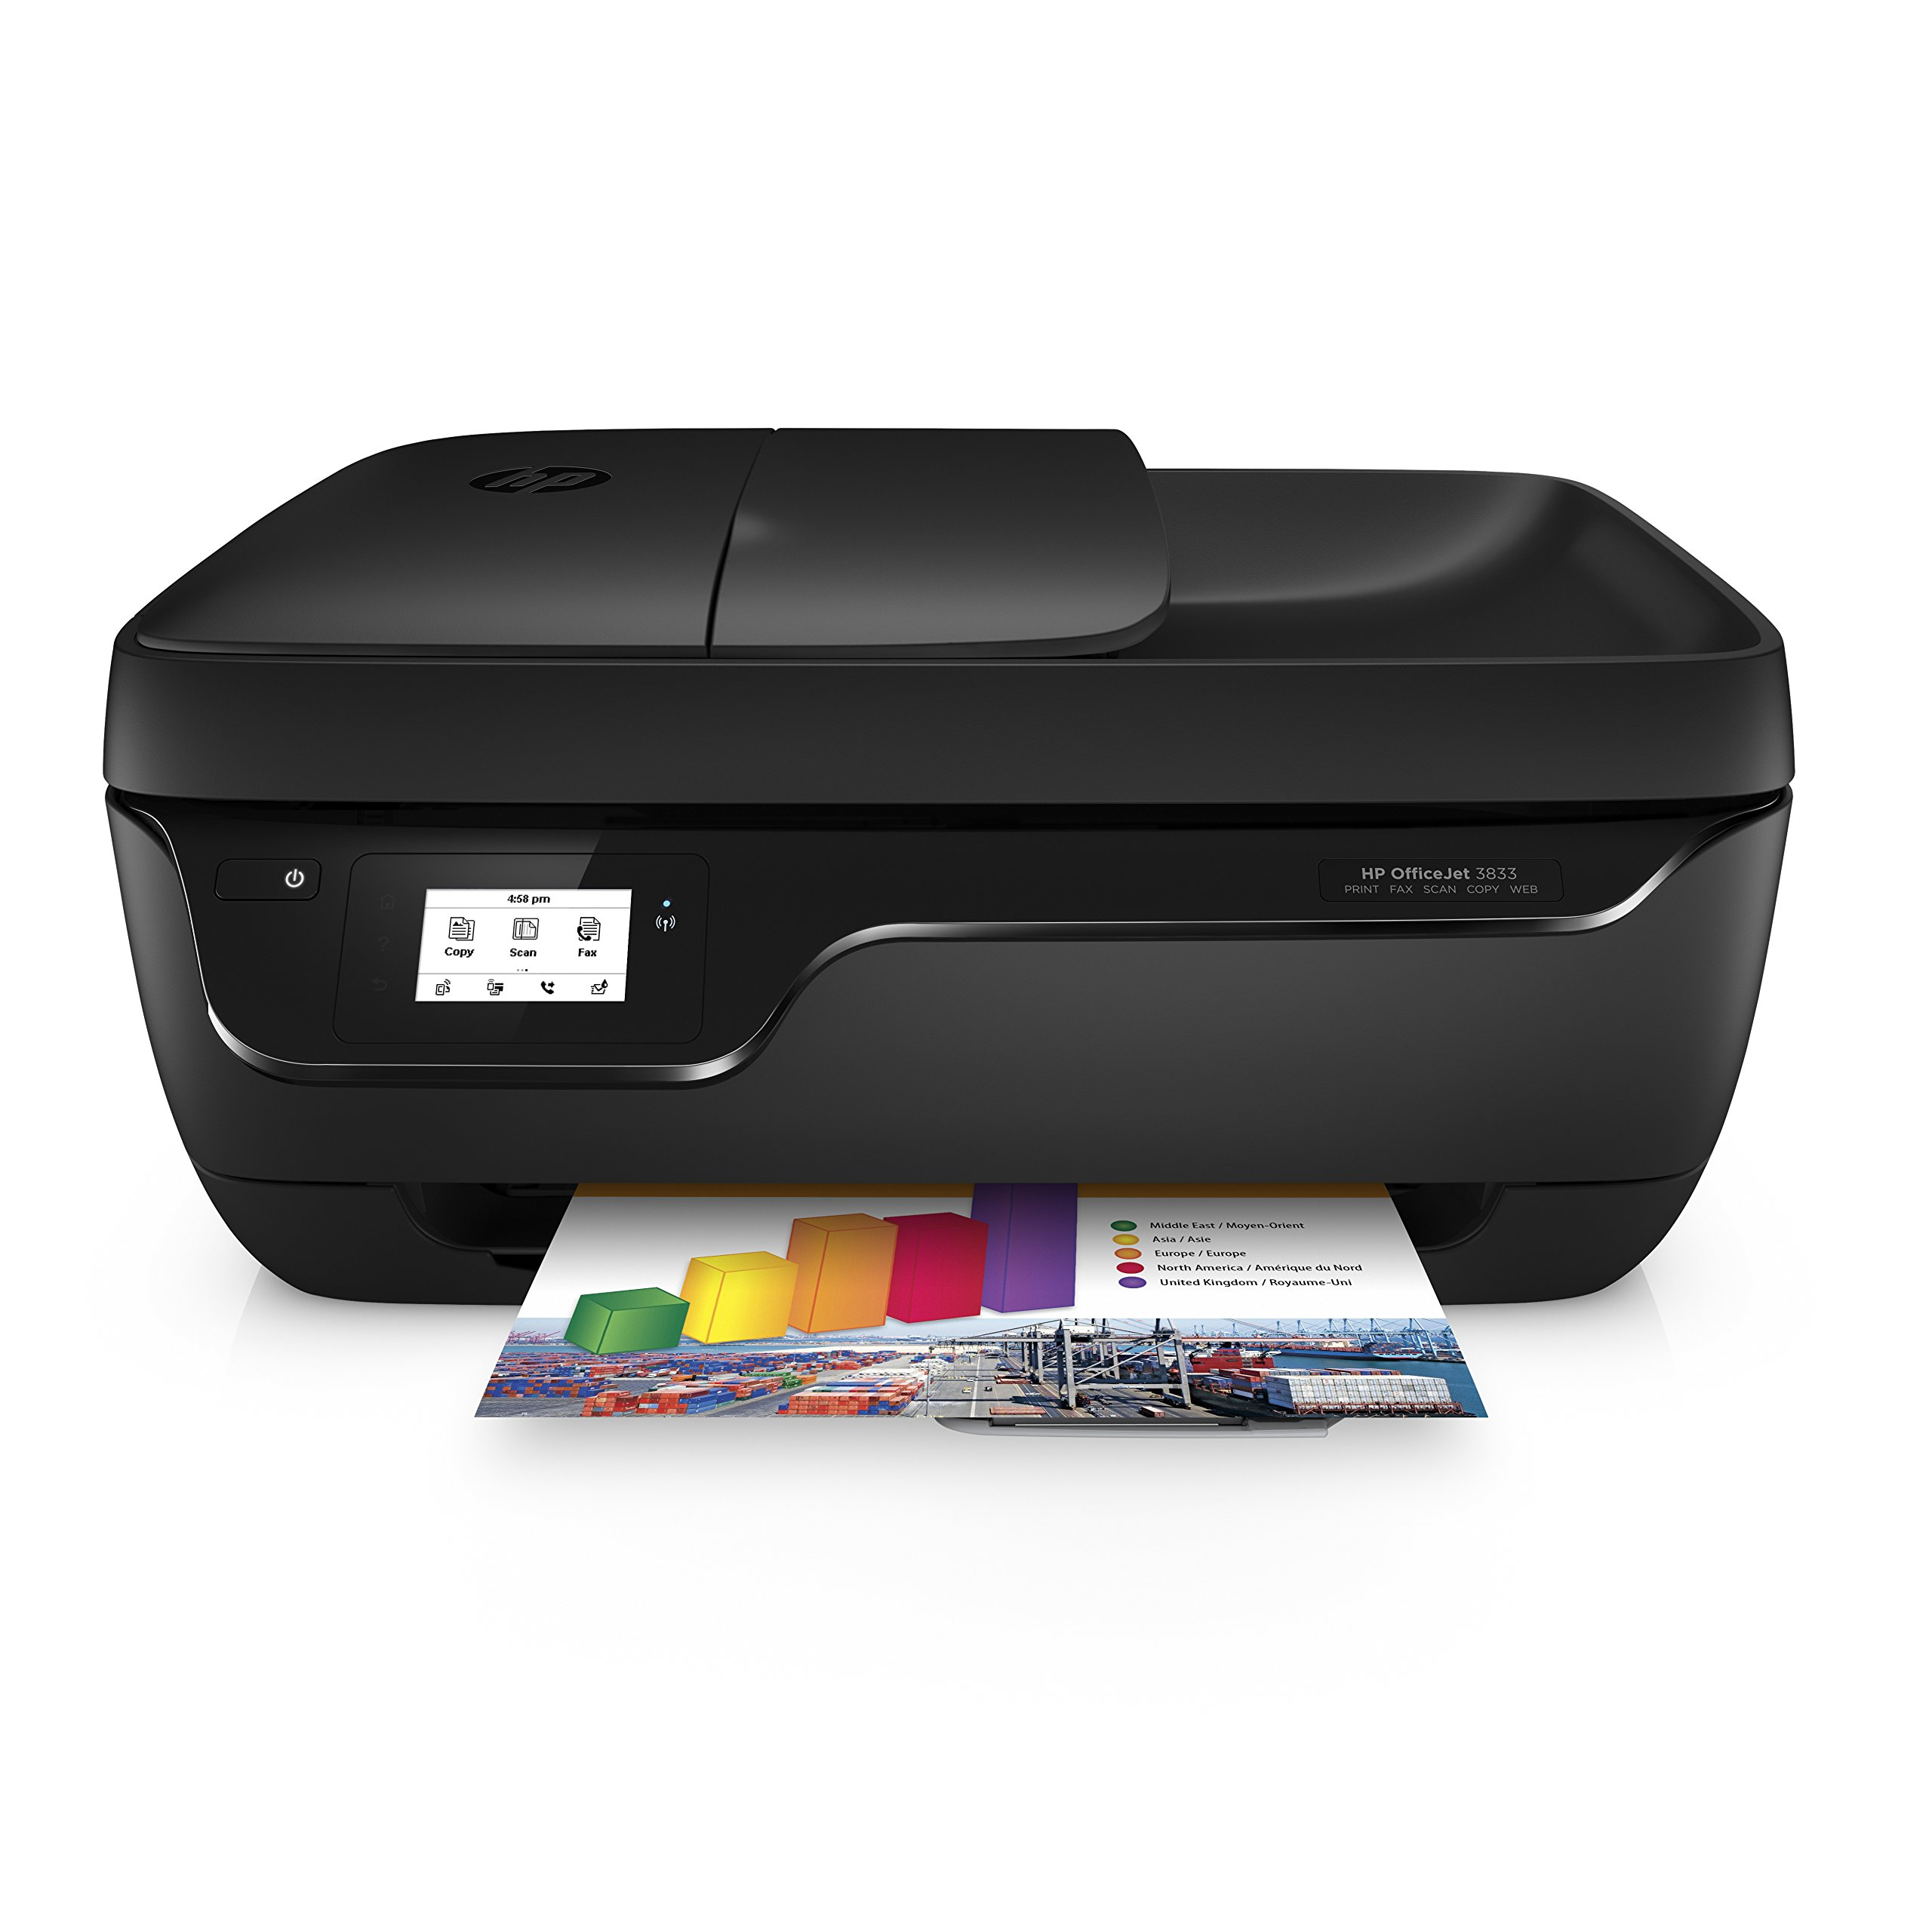 HP OfficeJet 3833 All-in-One Printer, HP Instant Ink & Amazon Dash Replenishment Ready (K7V37A) by HP